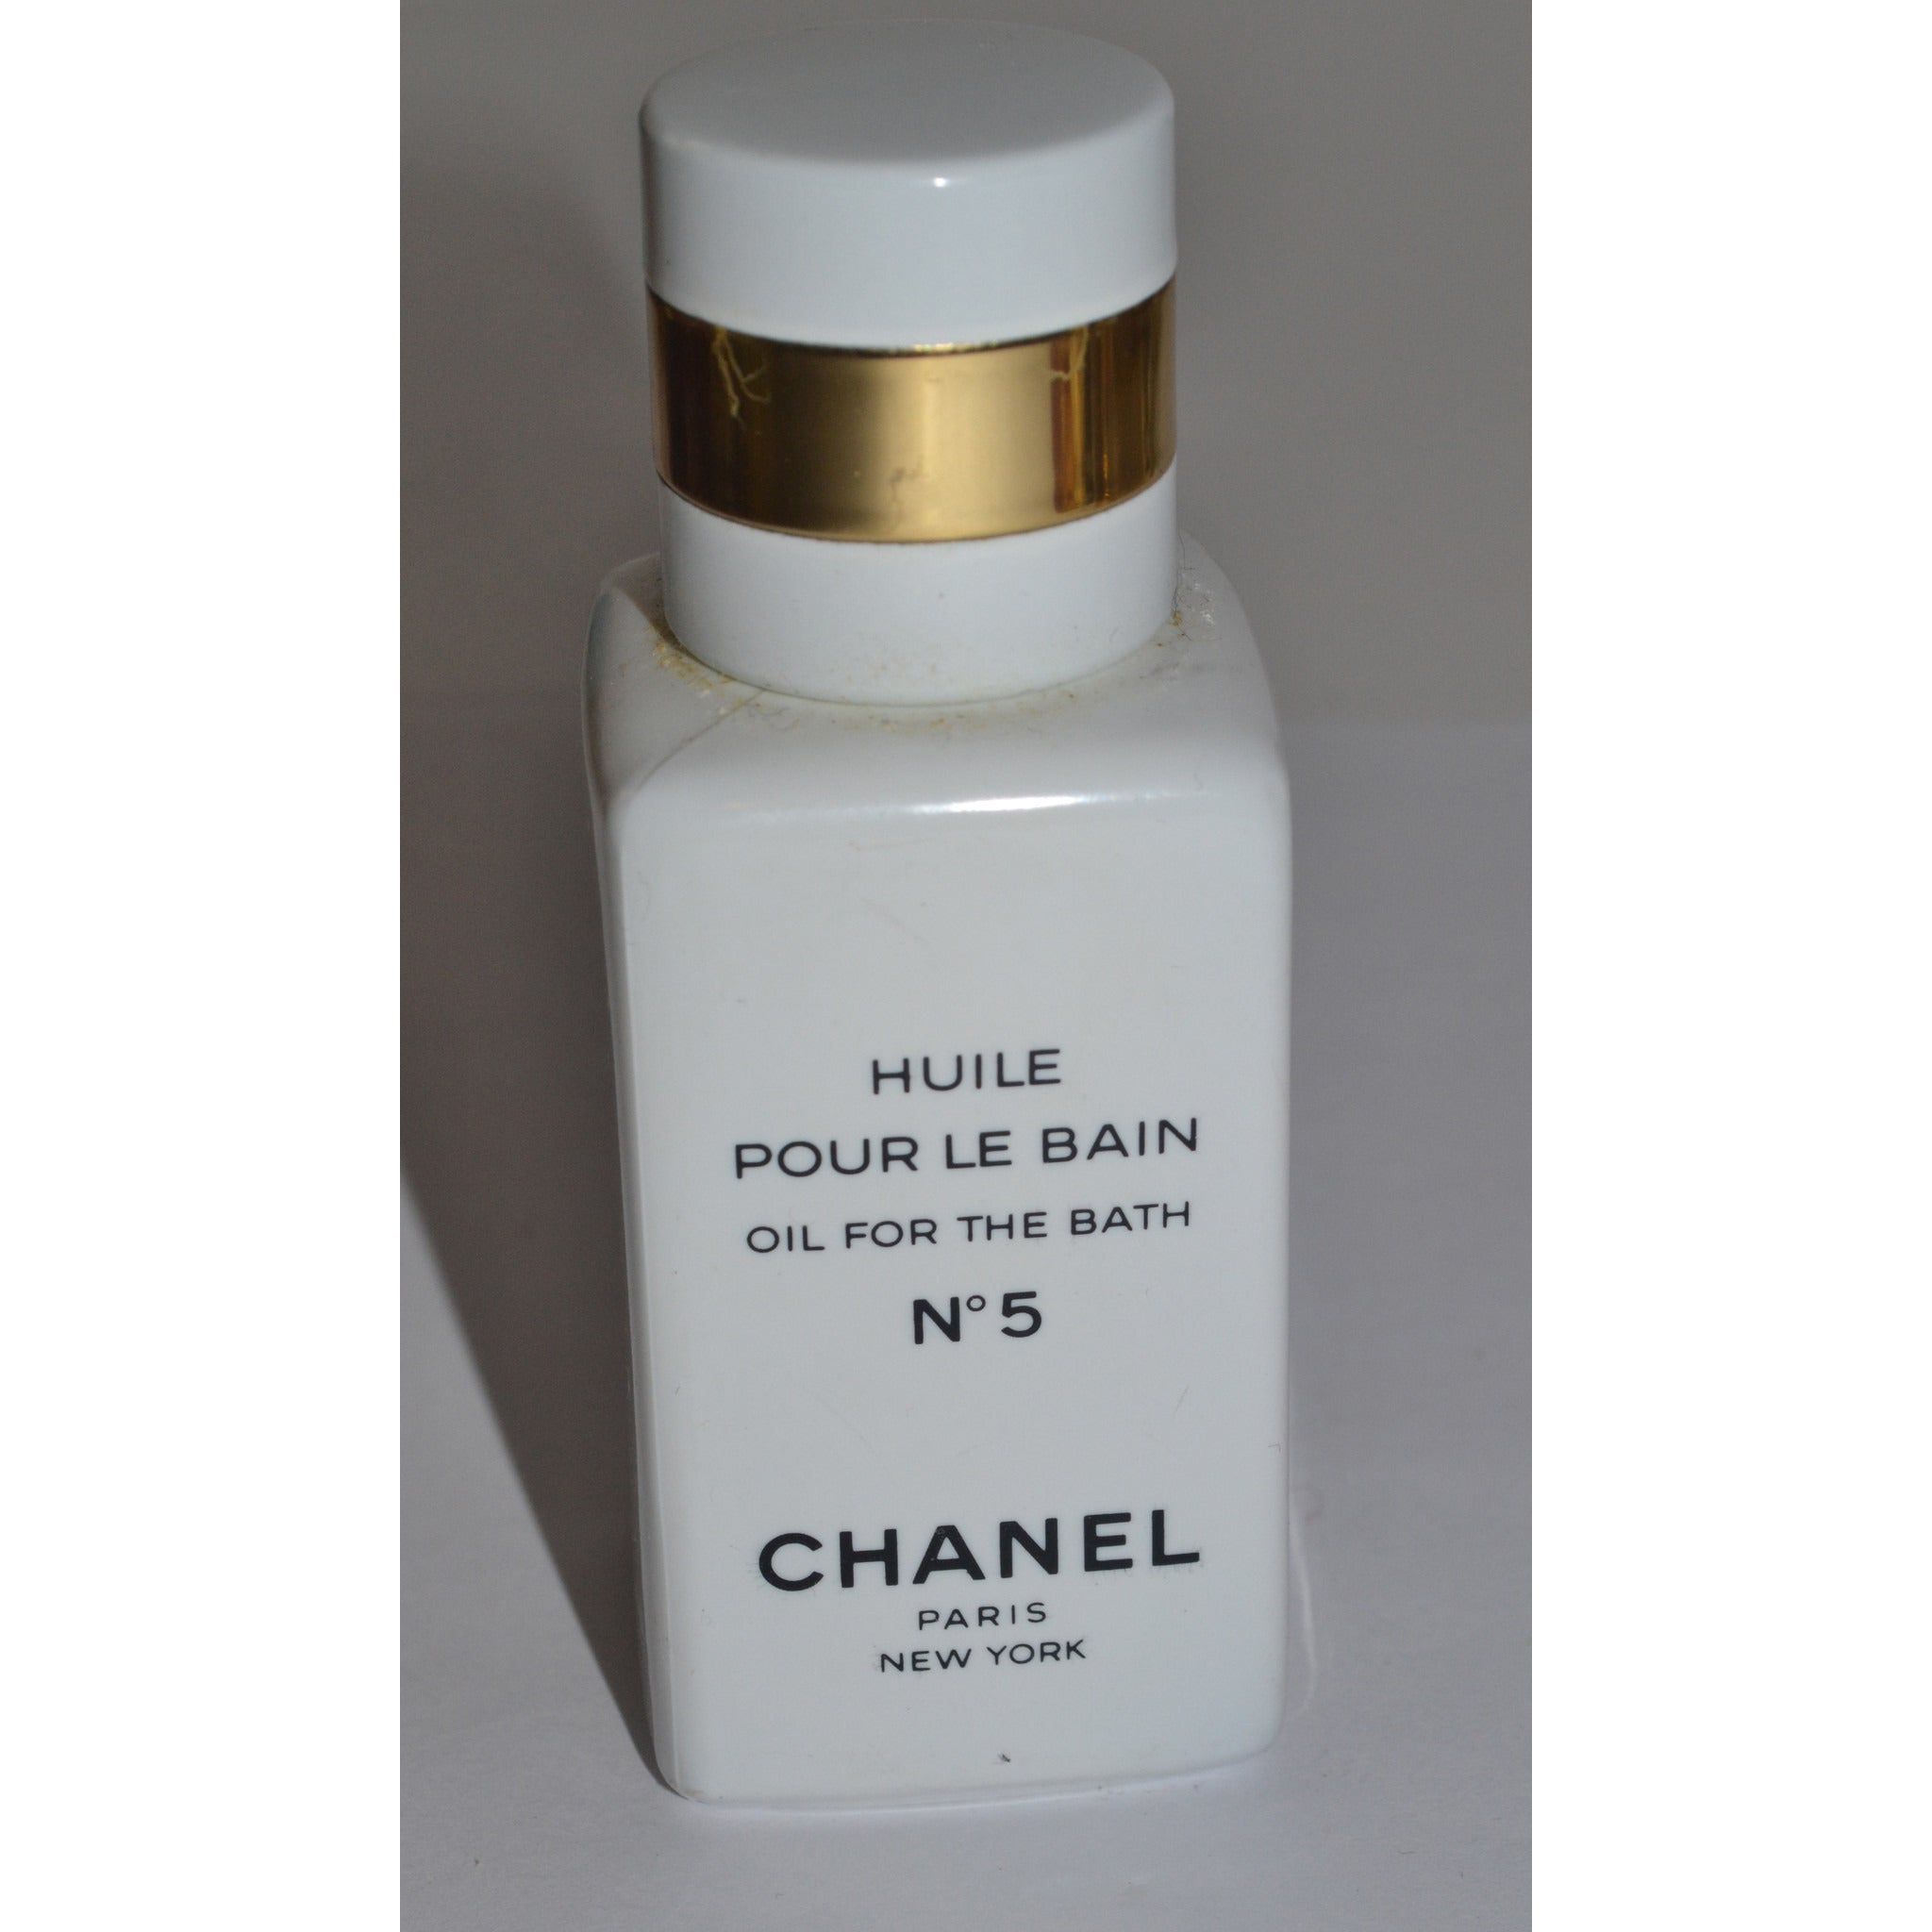 Vintage Chanel No 5 Bath Oil